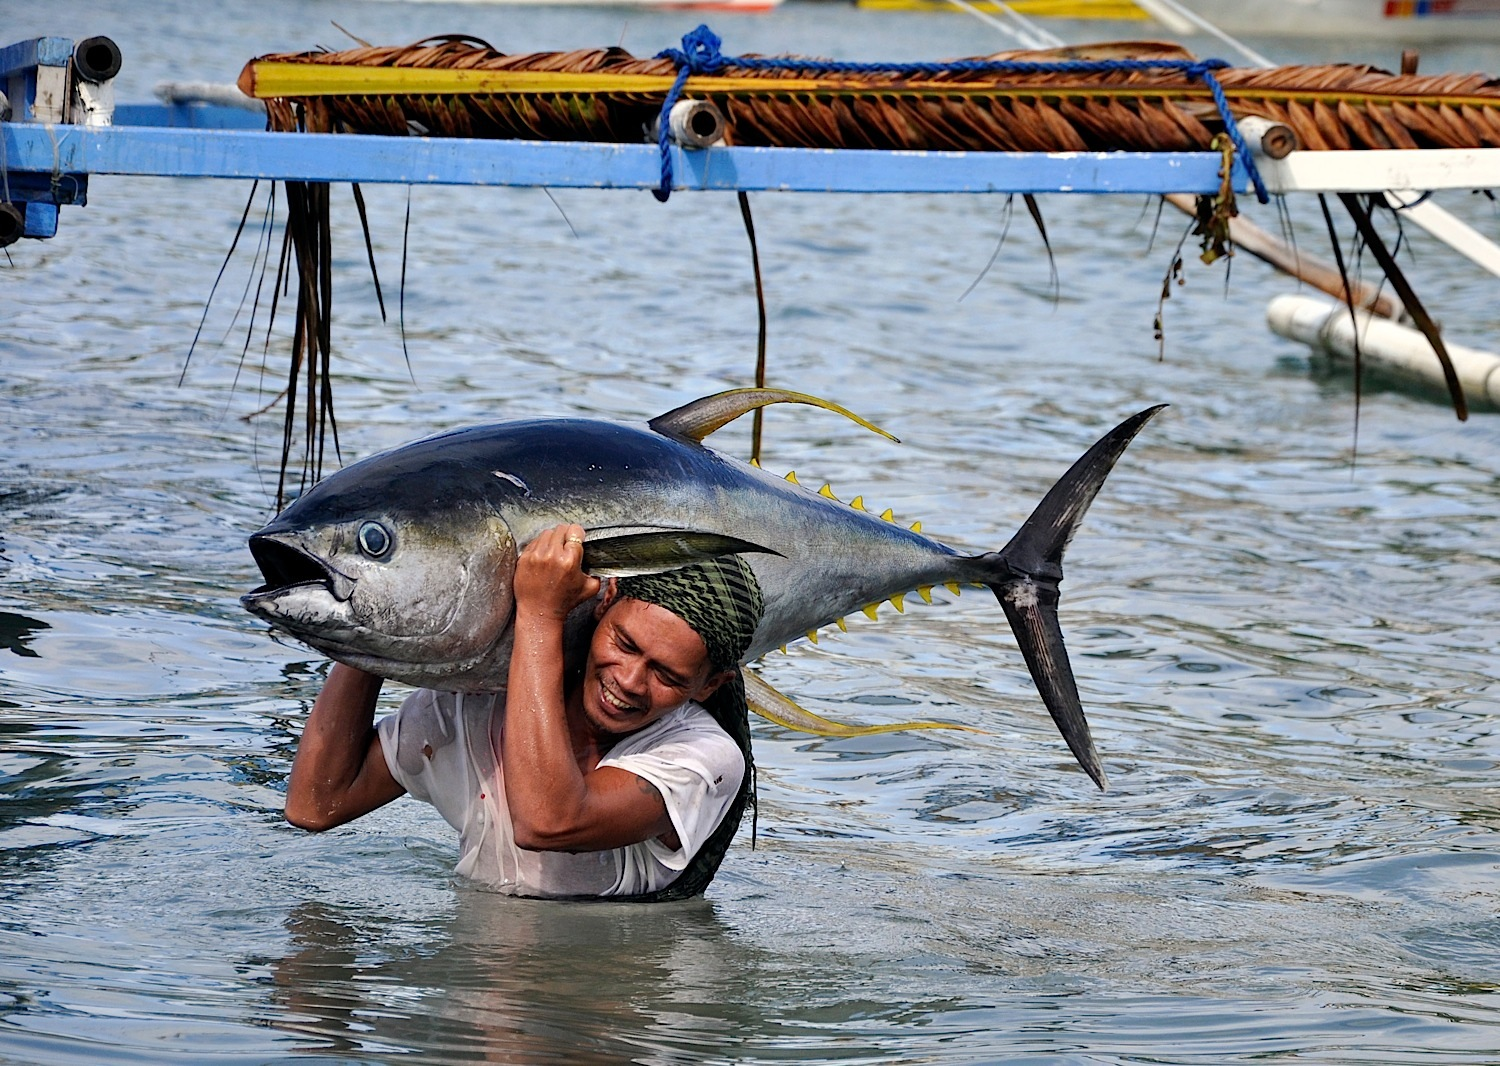 One in three tuna are caught in the Indo-Pacific Region. To ease pressure on flagging stocks while retaining profit, many fishermen are turning to low-impact systems. A yellowfin tuna handliner brings in the catch of the day in Mindoro, Philippines.  (Photo by Gregg Yan)